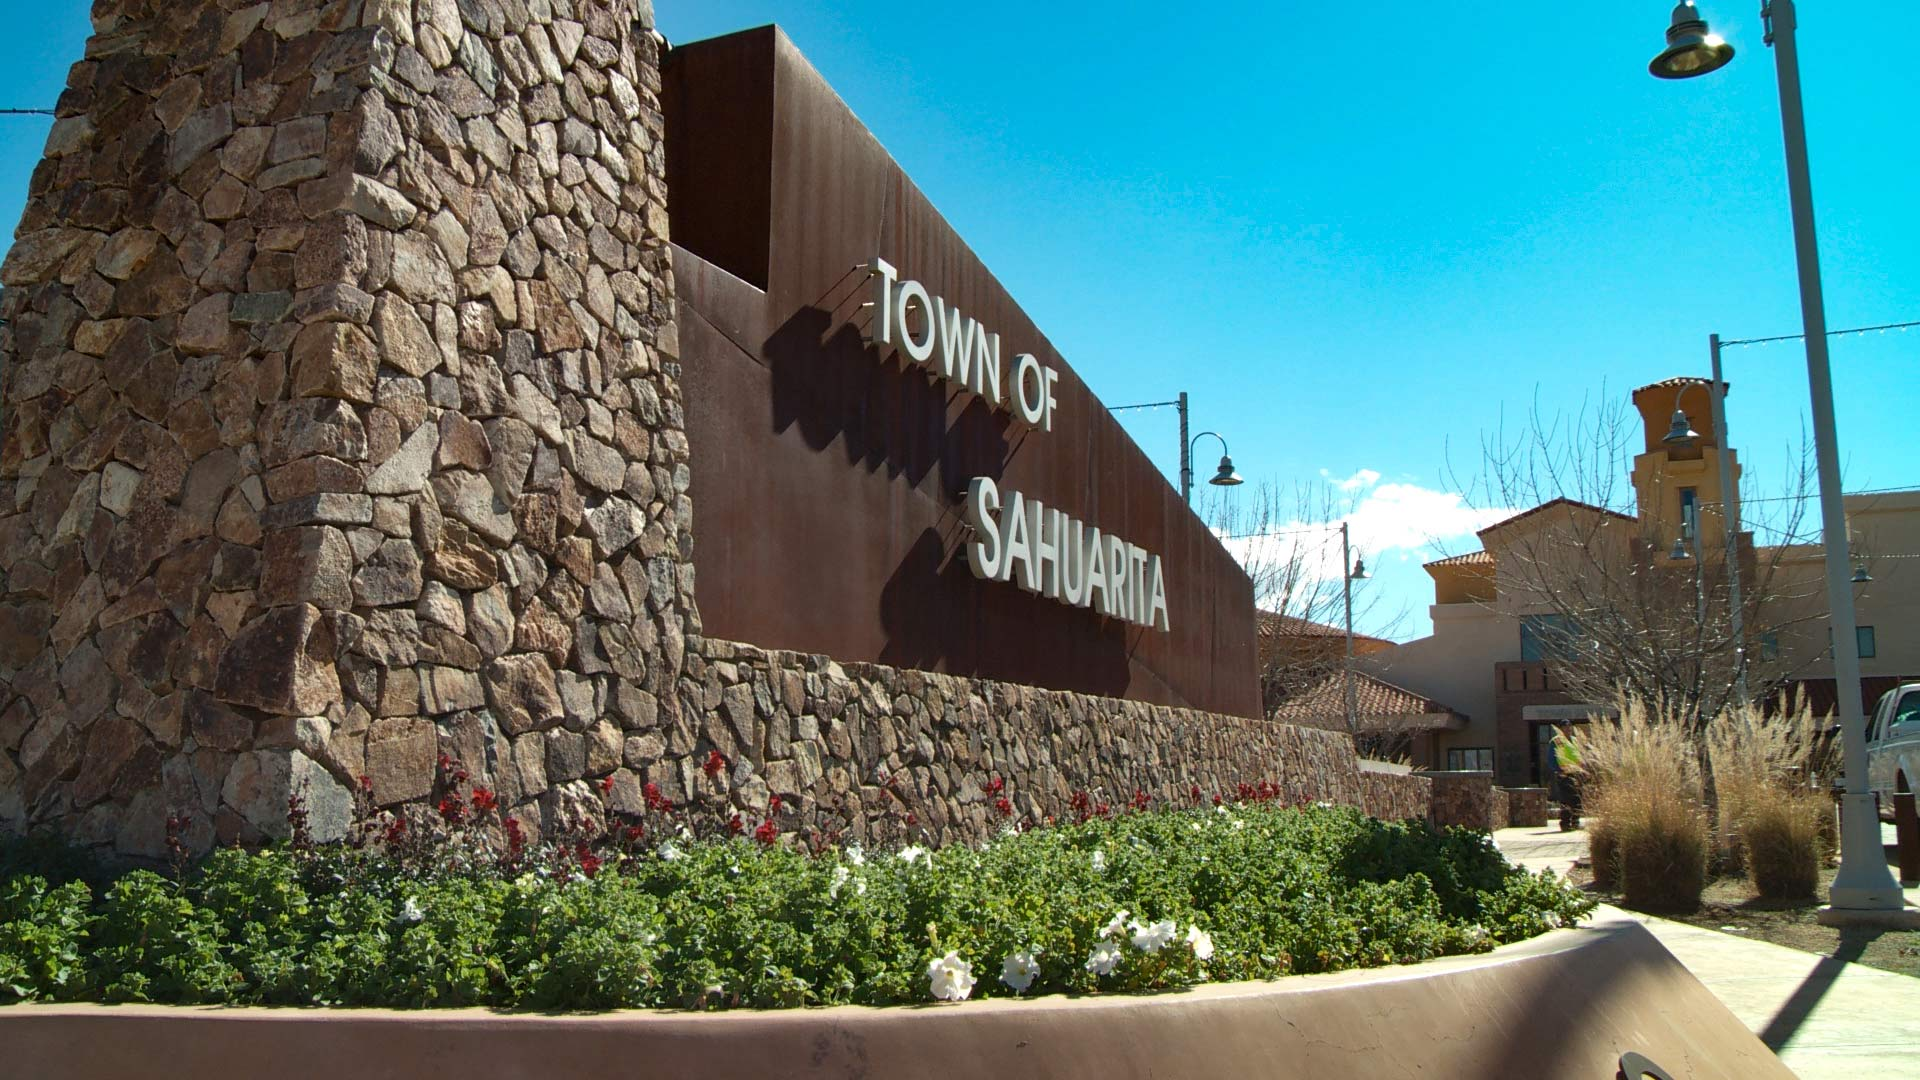 Sign of the town of Sahuarita.